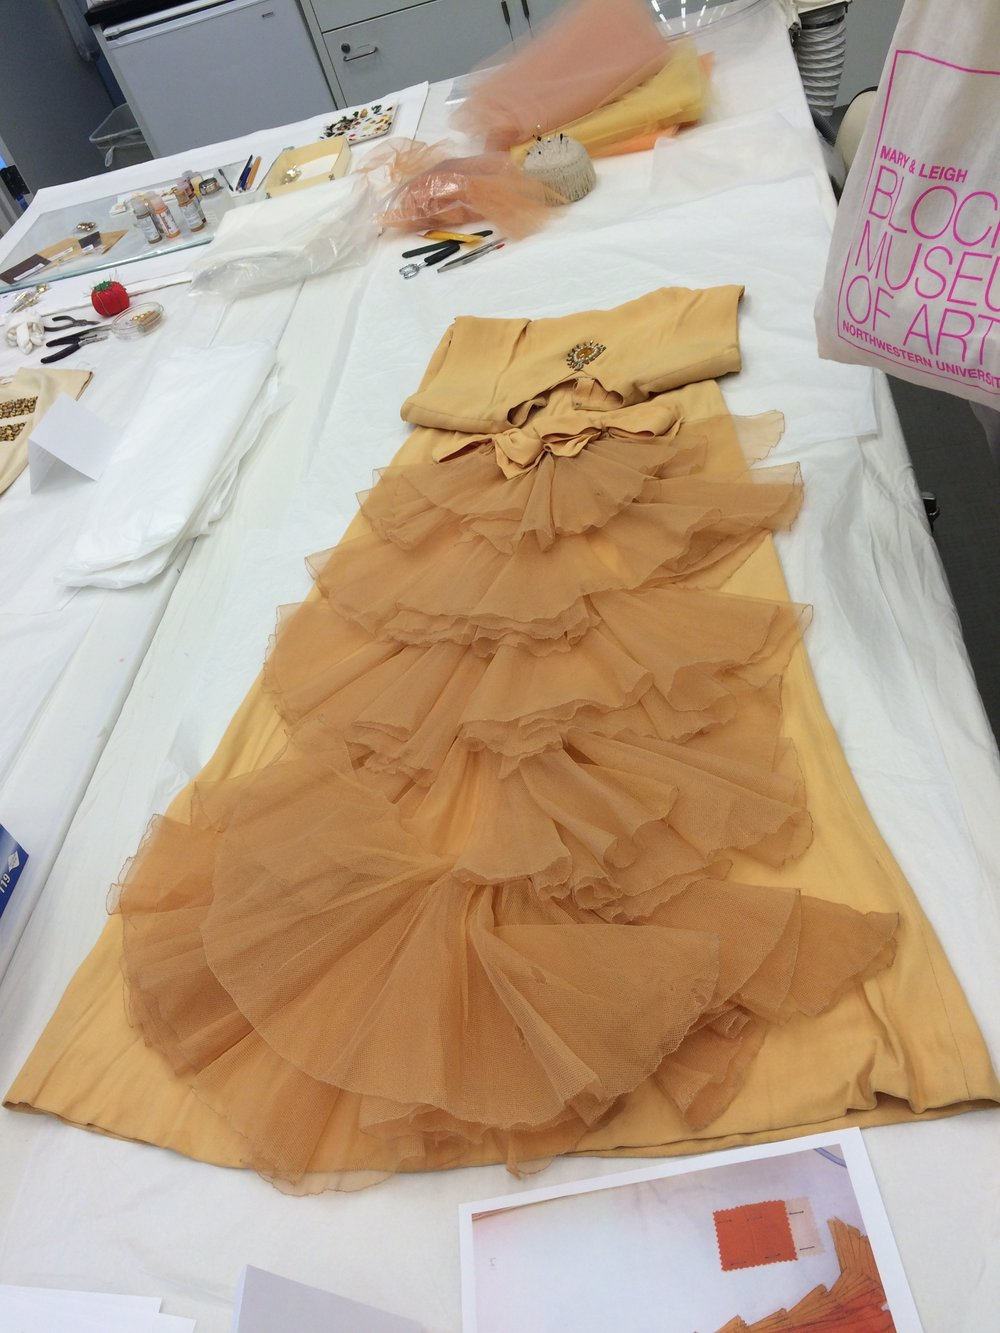 The elaborate tulle detail on the back of the dress also needed some reinforcement to be stable enough for display